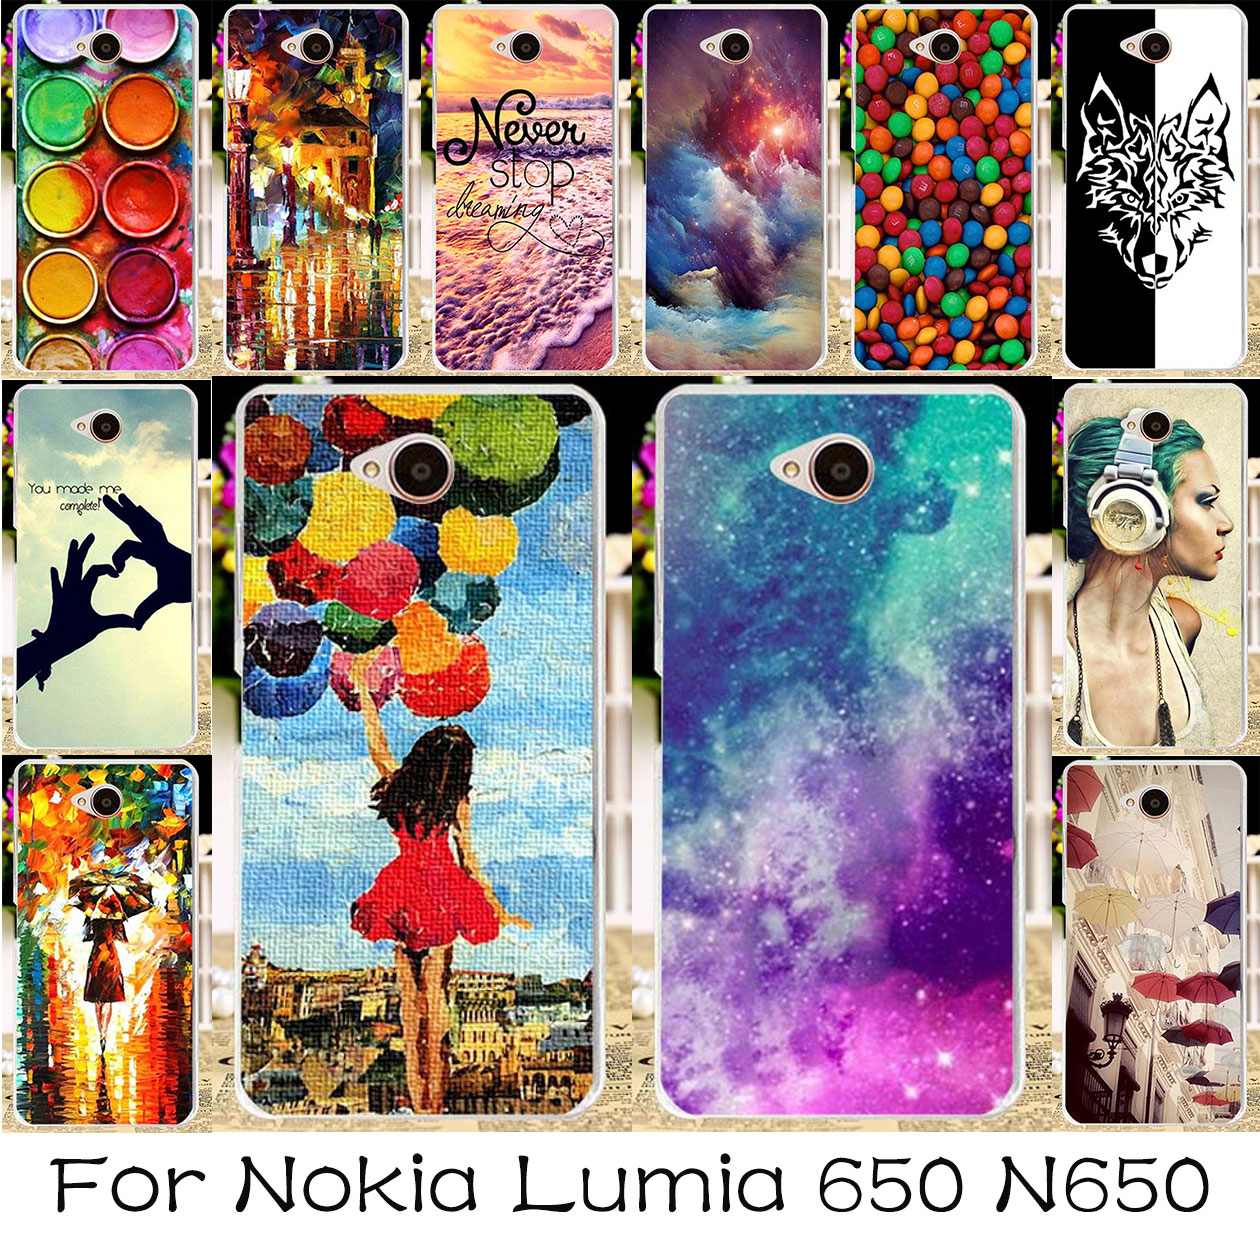 new concept a85bb 5f303 US $2.22 |TAOYUNXI DIY Painted Silicone Plastic Phone Case For Microsoft  Nokia Lumia 650 N650 5.0 inch Bag Cover For Nokia Lumia 650-in Fitted Cases  ...